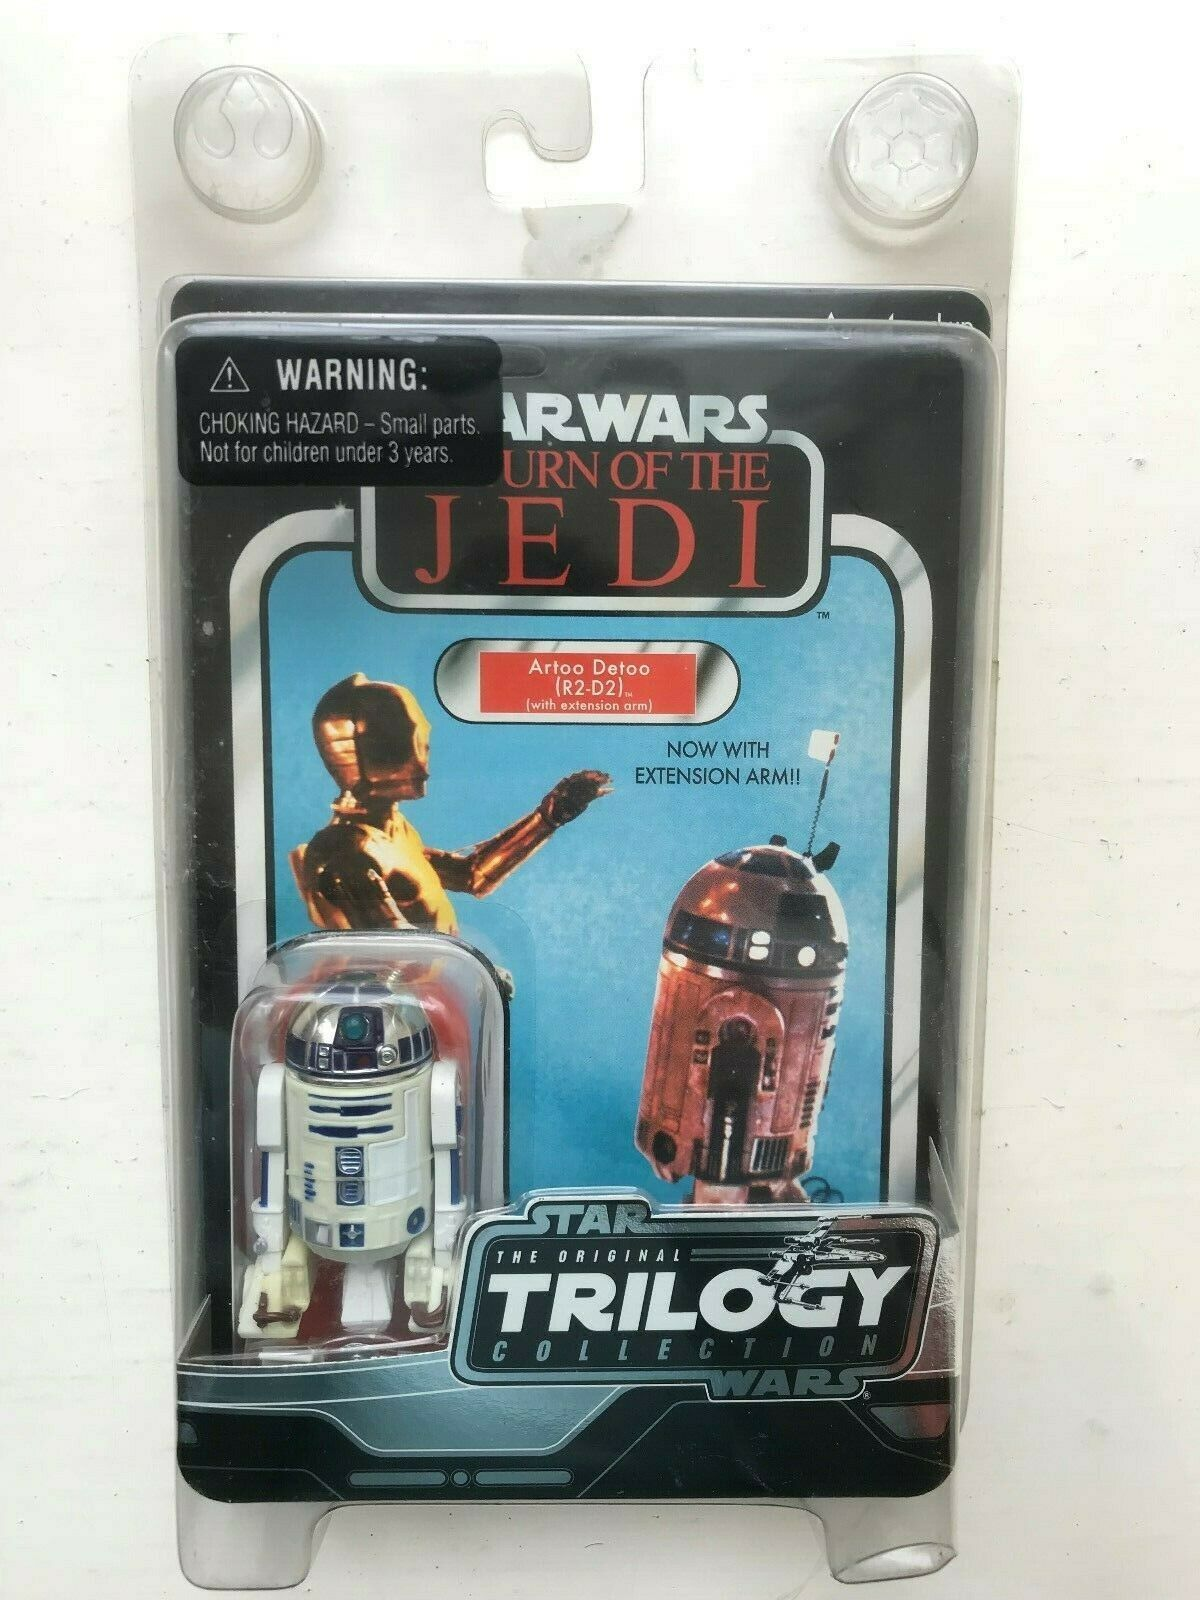 STAR WARS ORIGINAL TRILOGY COLLECTION R2-D2 RETURN OF THE JEDI HASBRO FIGURE